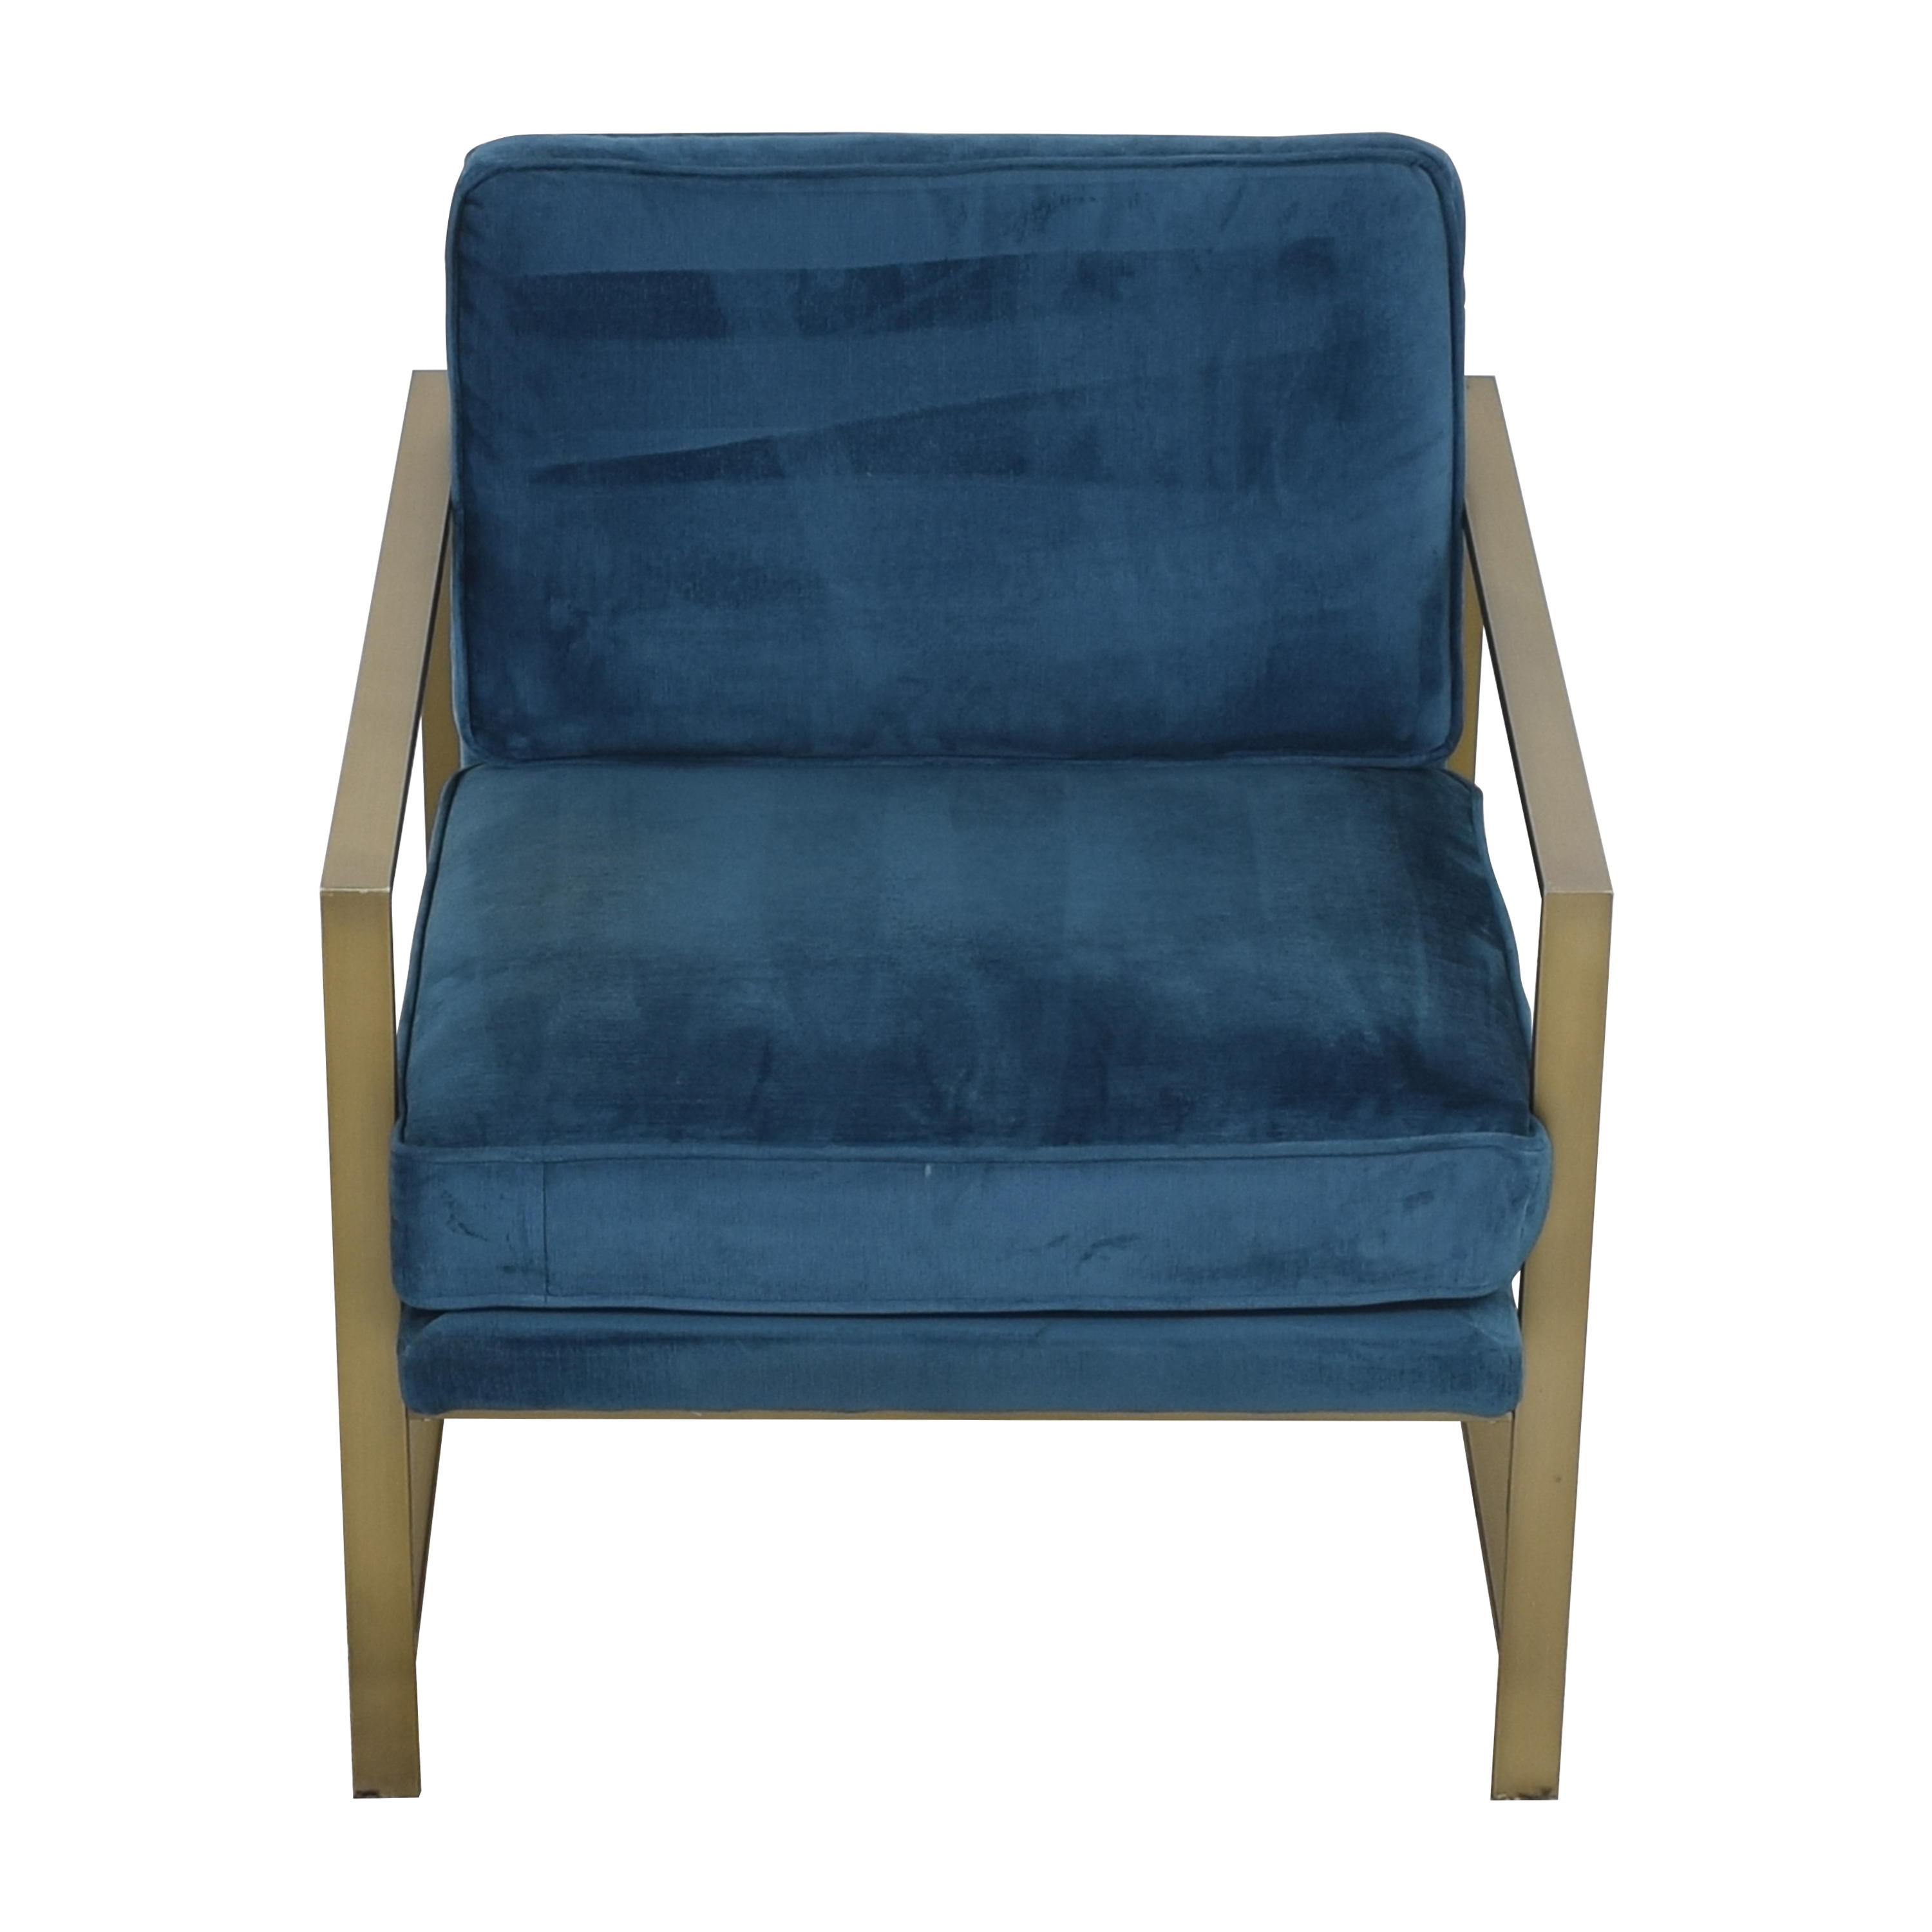 West Elm West Elm Upholstered Chair dimensions